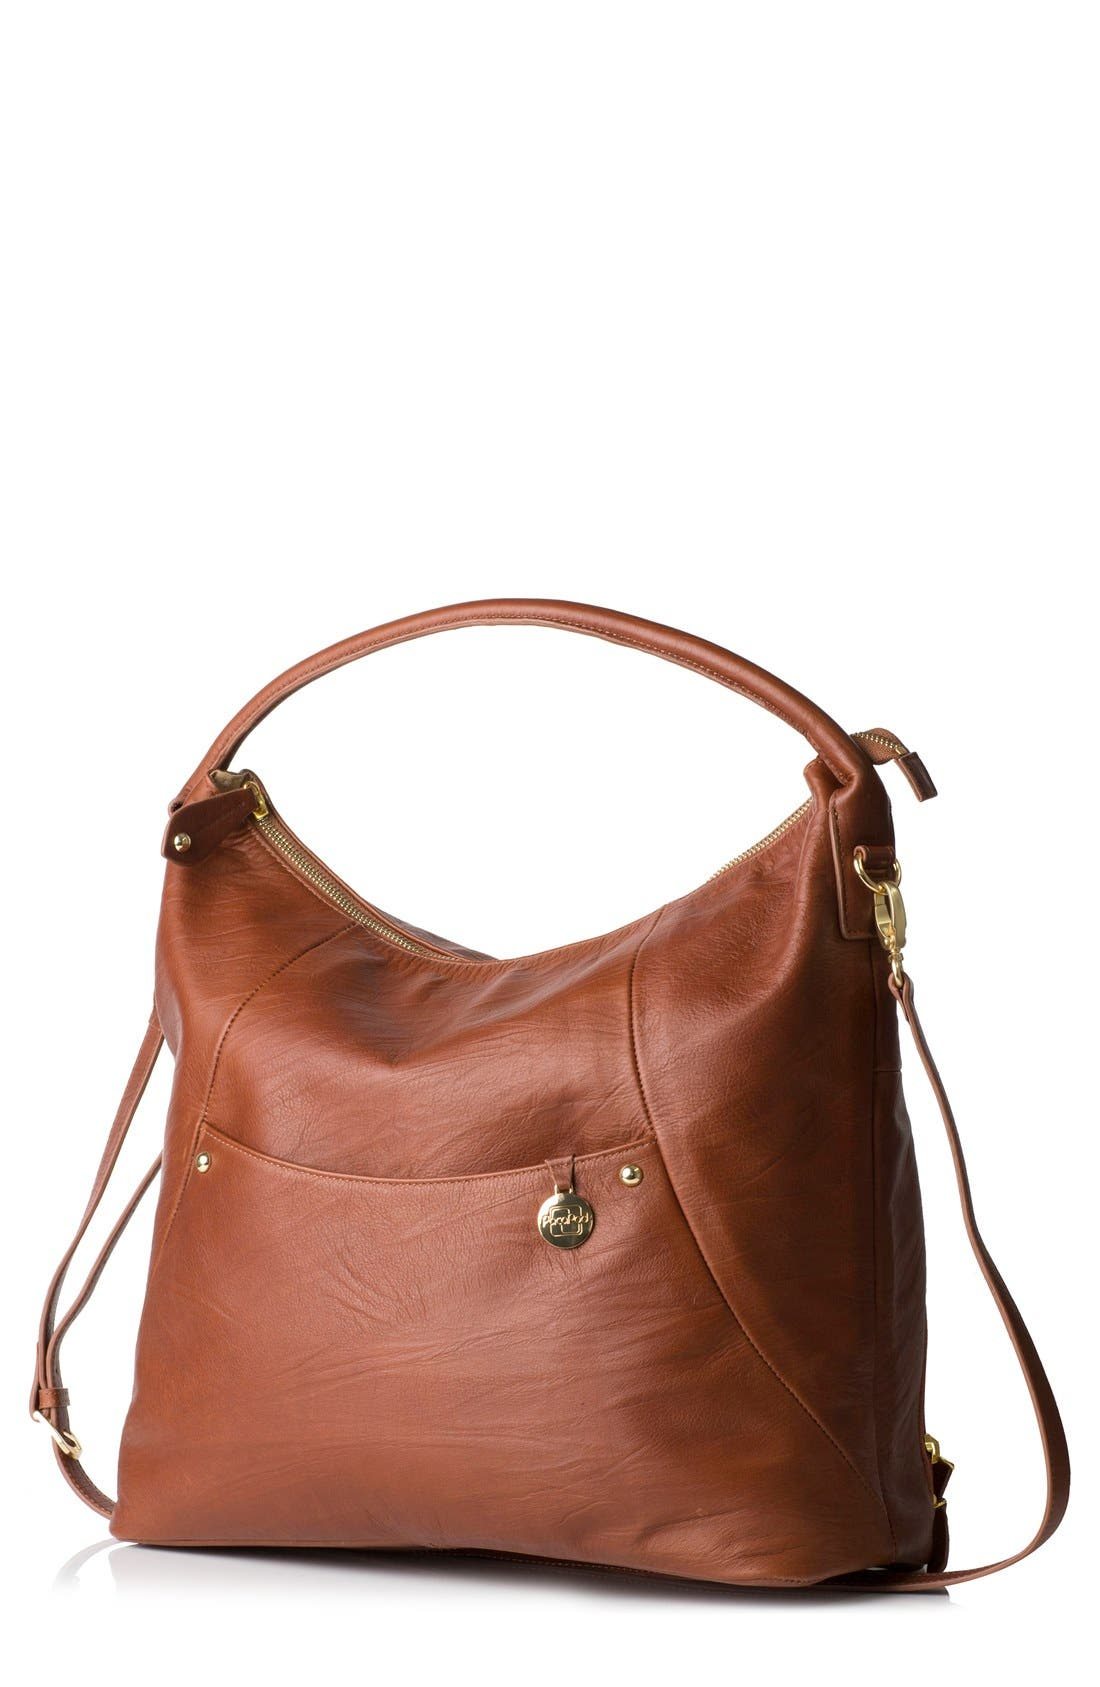 PacaPod 'Jasper' Leather Diaper Bag